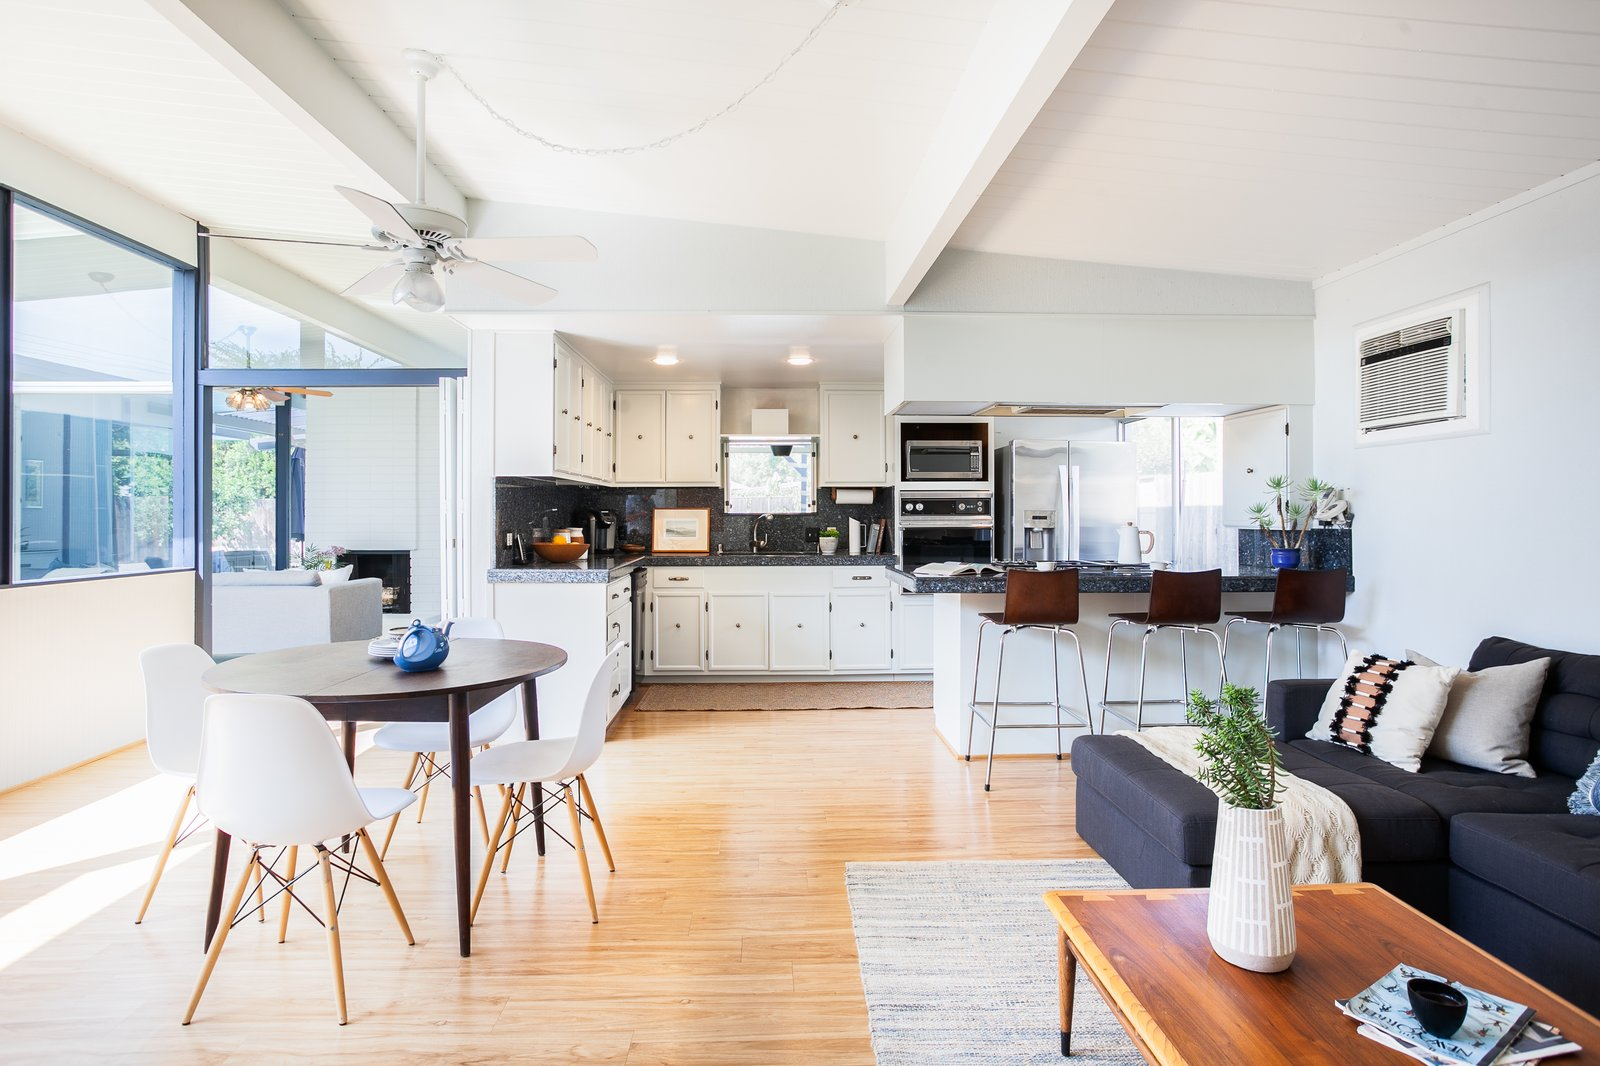 Dining, Chair, Ceiling, Recessed, Light Hardwood, Table, and Rug The kitchen is spacious, open, and bright, overlooking a more casual eating-and-sitting area.    Best Dining Light Hardwood Rug Ceiling Table Photos from Grab This Orange County Eichler For $1M